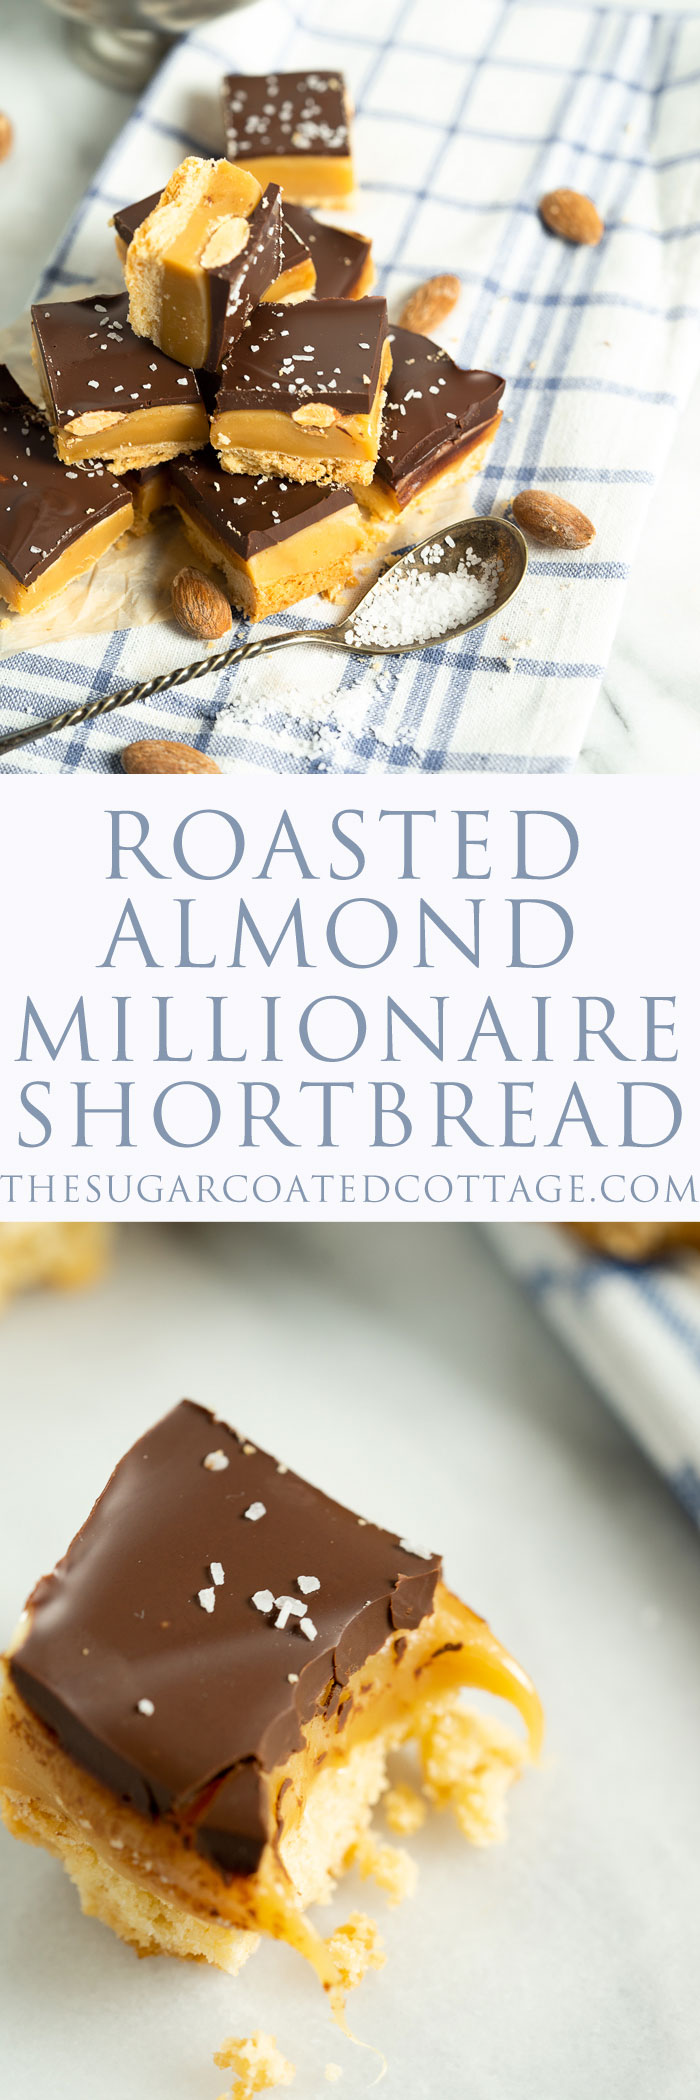 Roasted Almond Millionaire Shortbread - shortbread cookie base, generous caramel layer, roasted almonds, blanket of chocolate and a sprinkling of sea salt. #twix #millionaireshortbread #shortbread #cookie | thesugarcoatedcottage.com